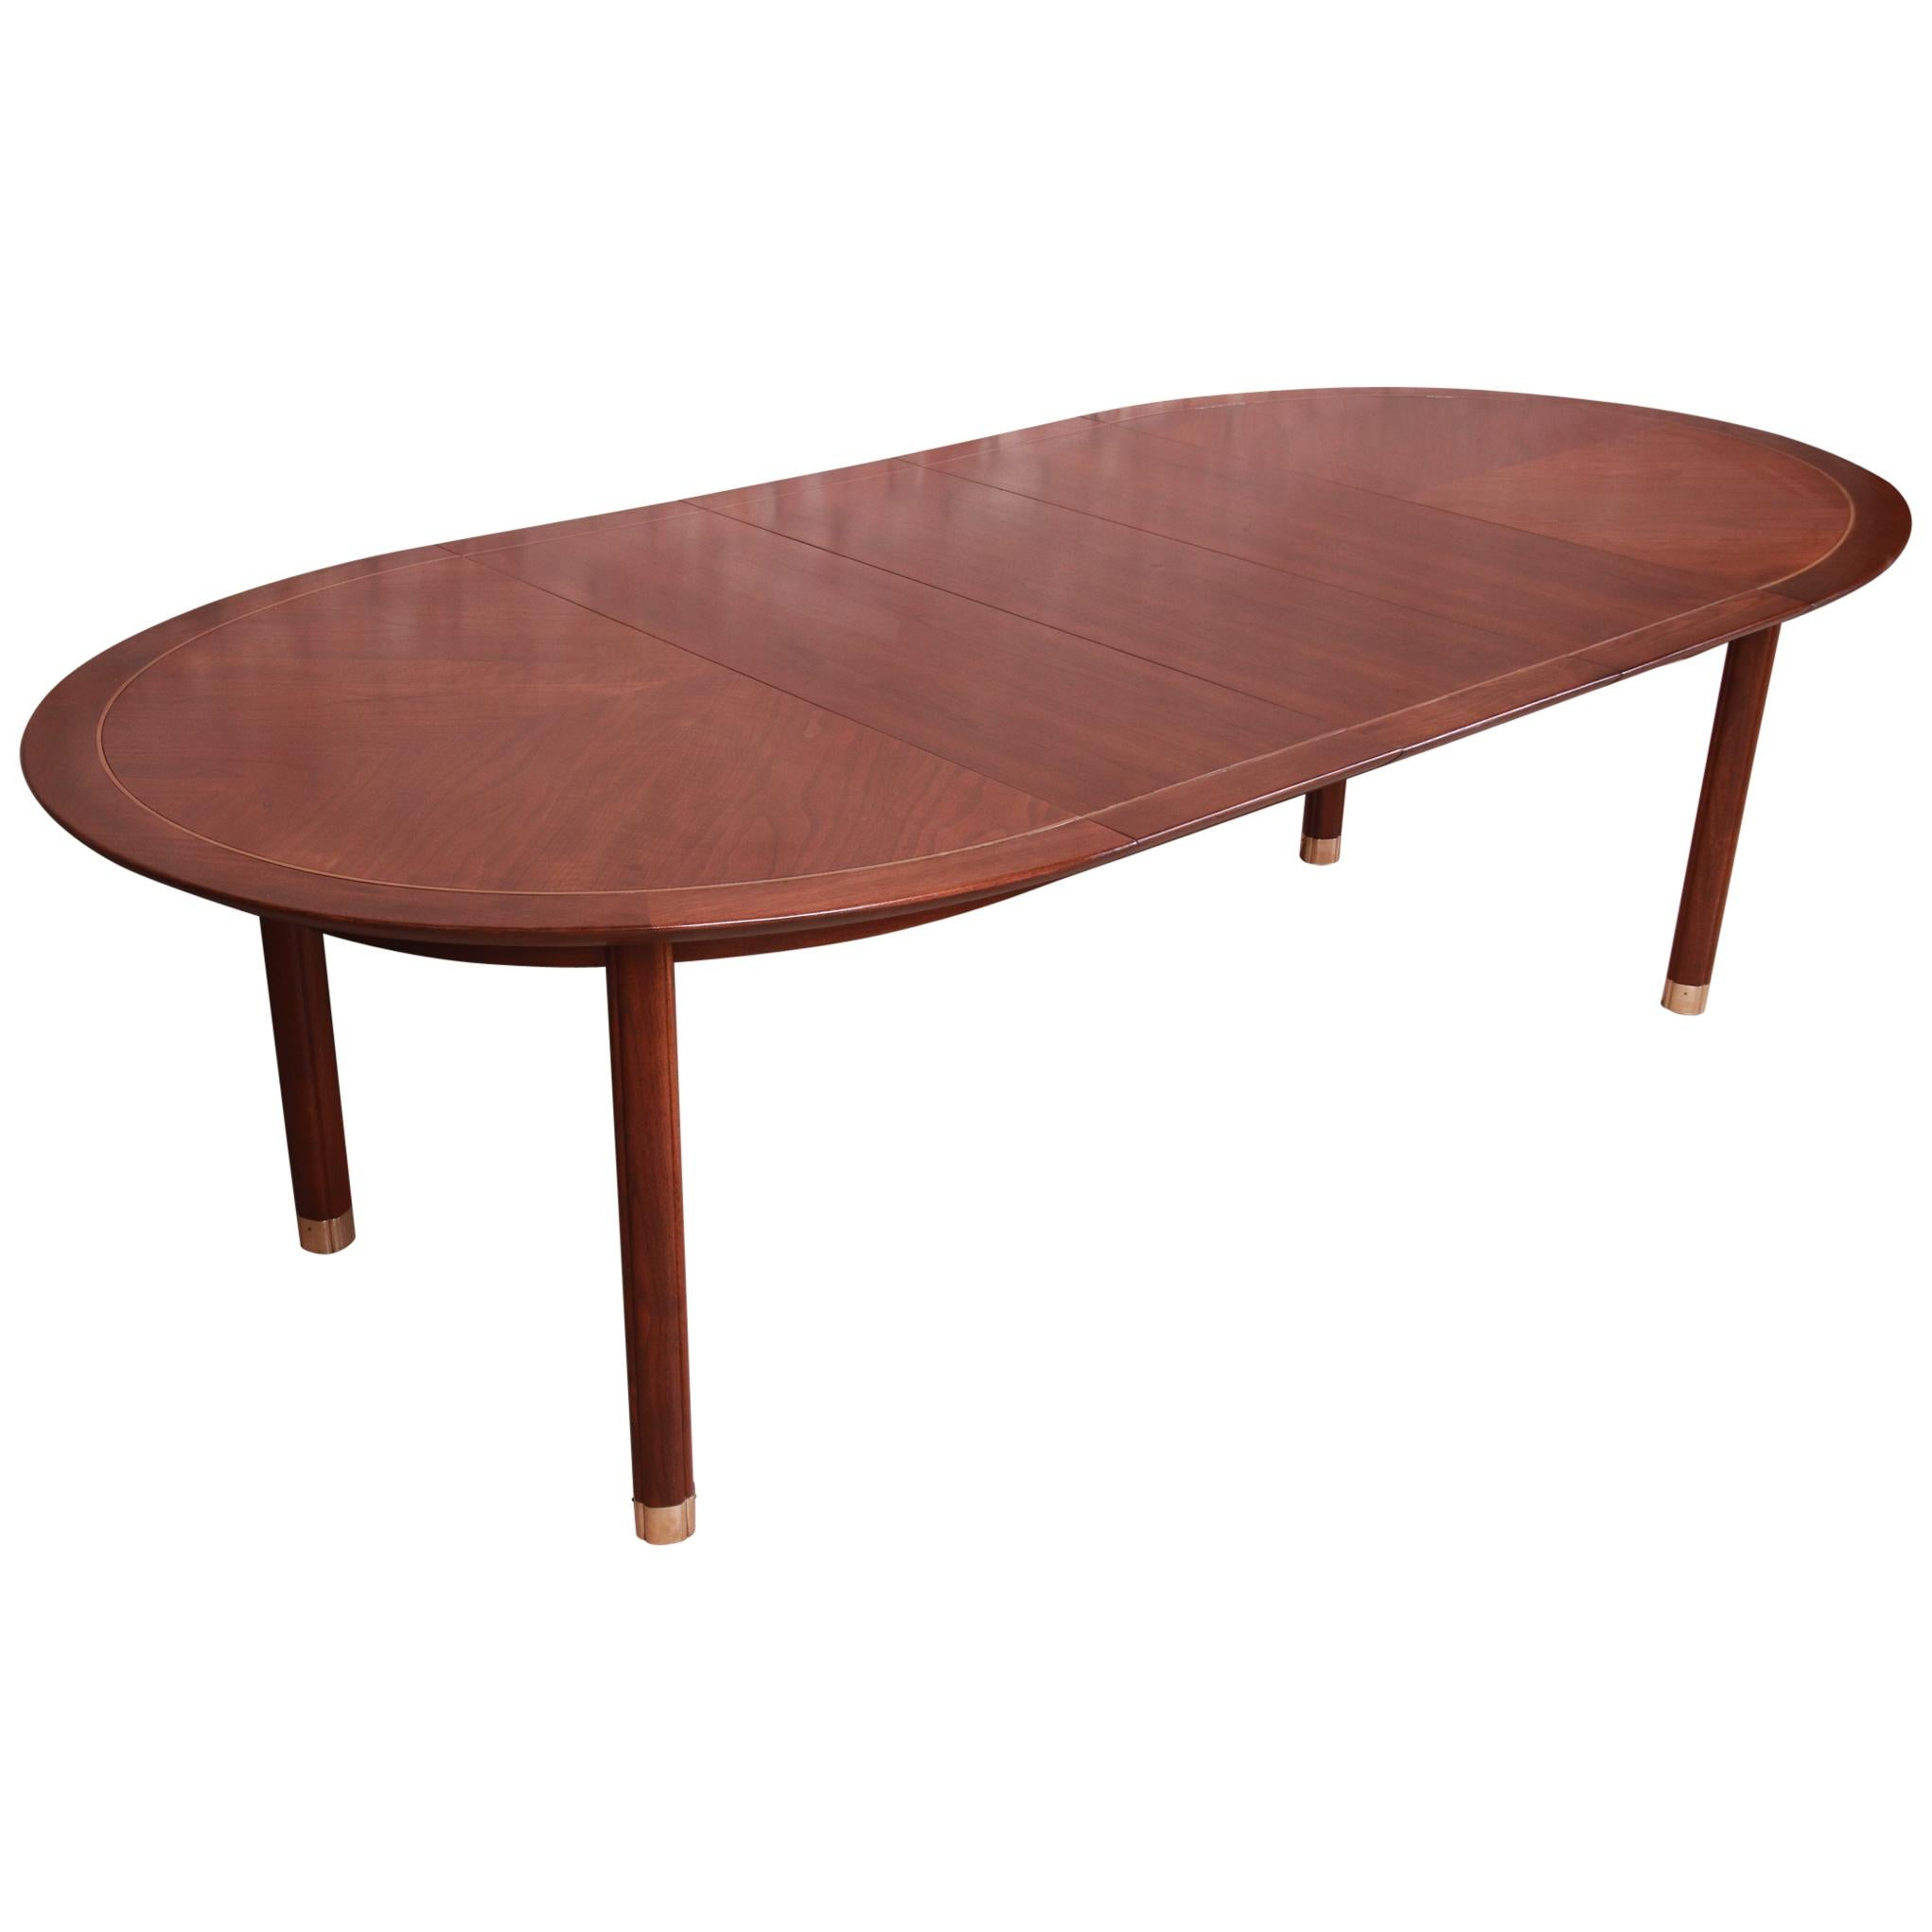 Michael Taylor for Baker Furniture Walnut and Brass Inlay Extension Dining Table